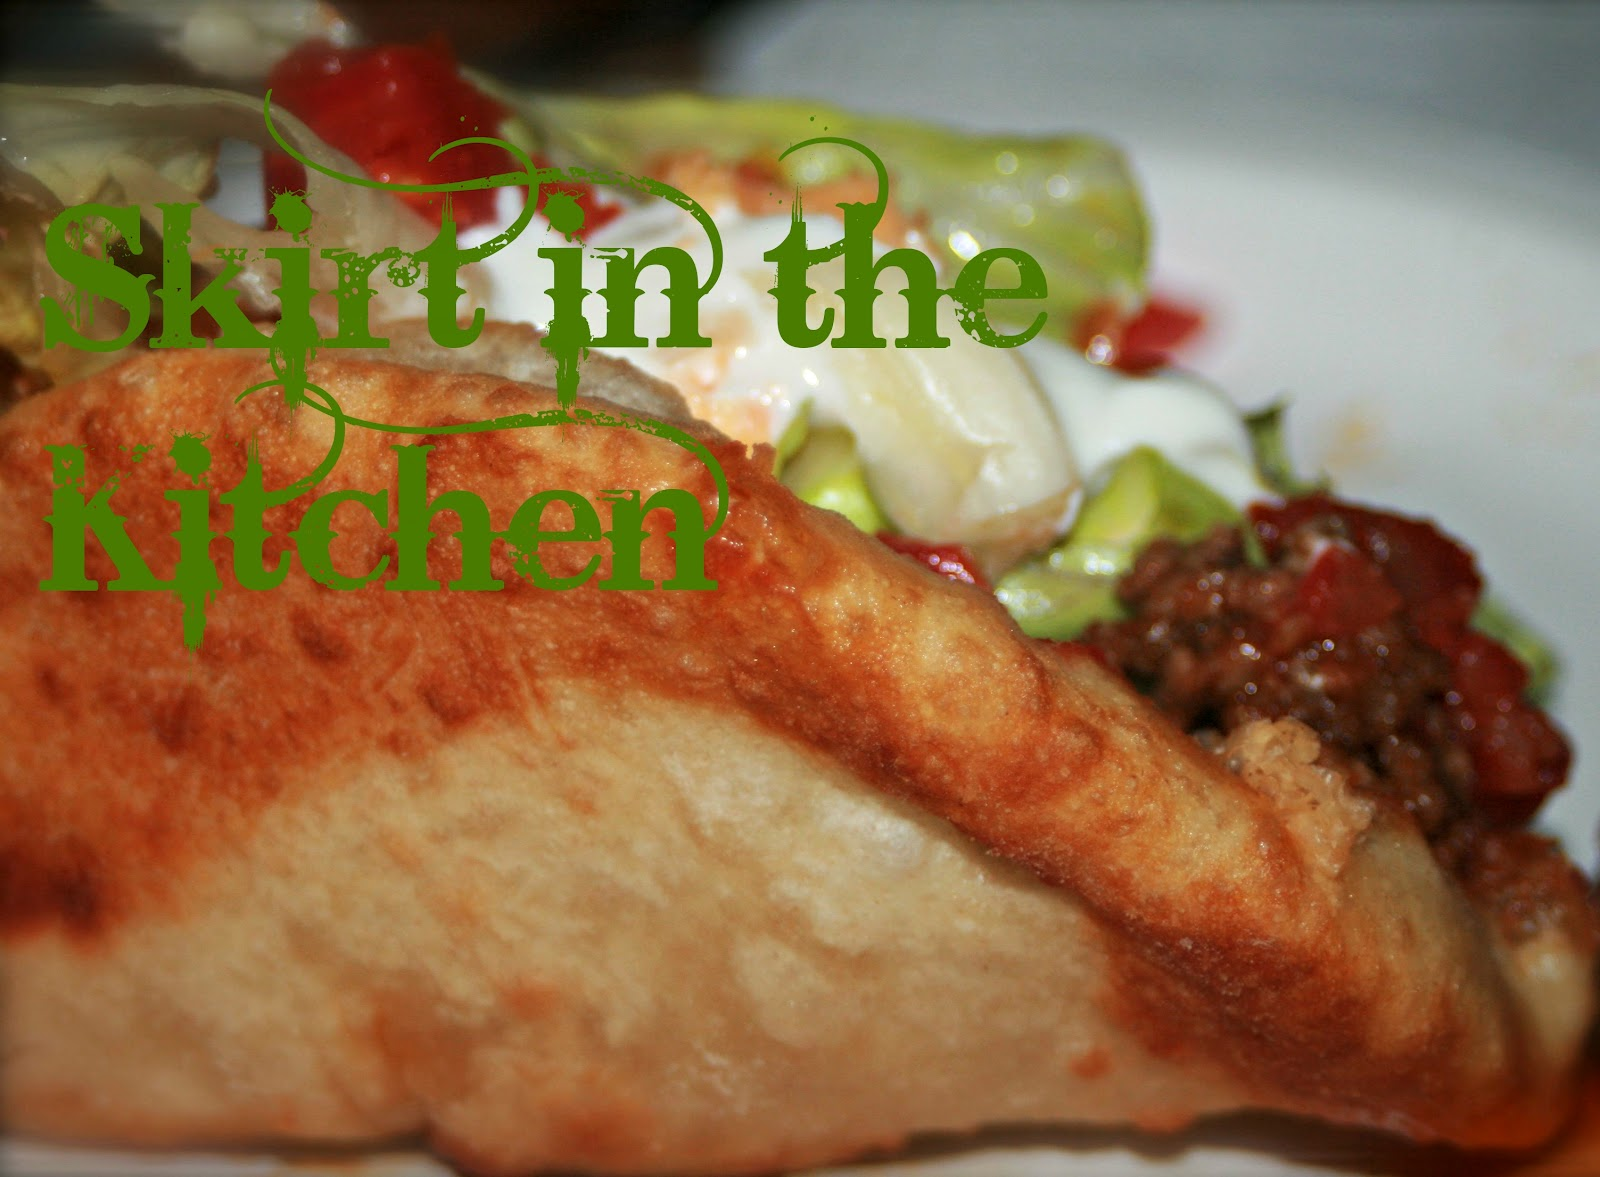 Skirt in the Kitchen: Indian Fry Bread for Tacos and Dessert